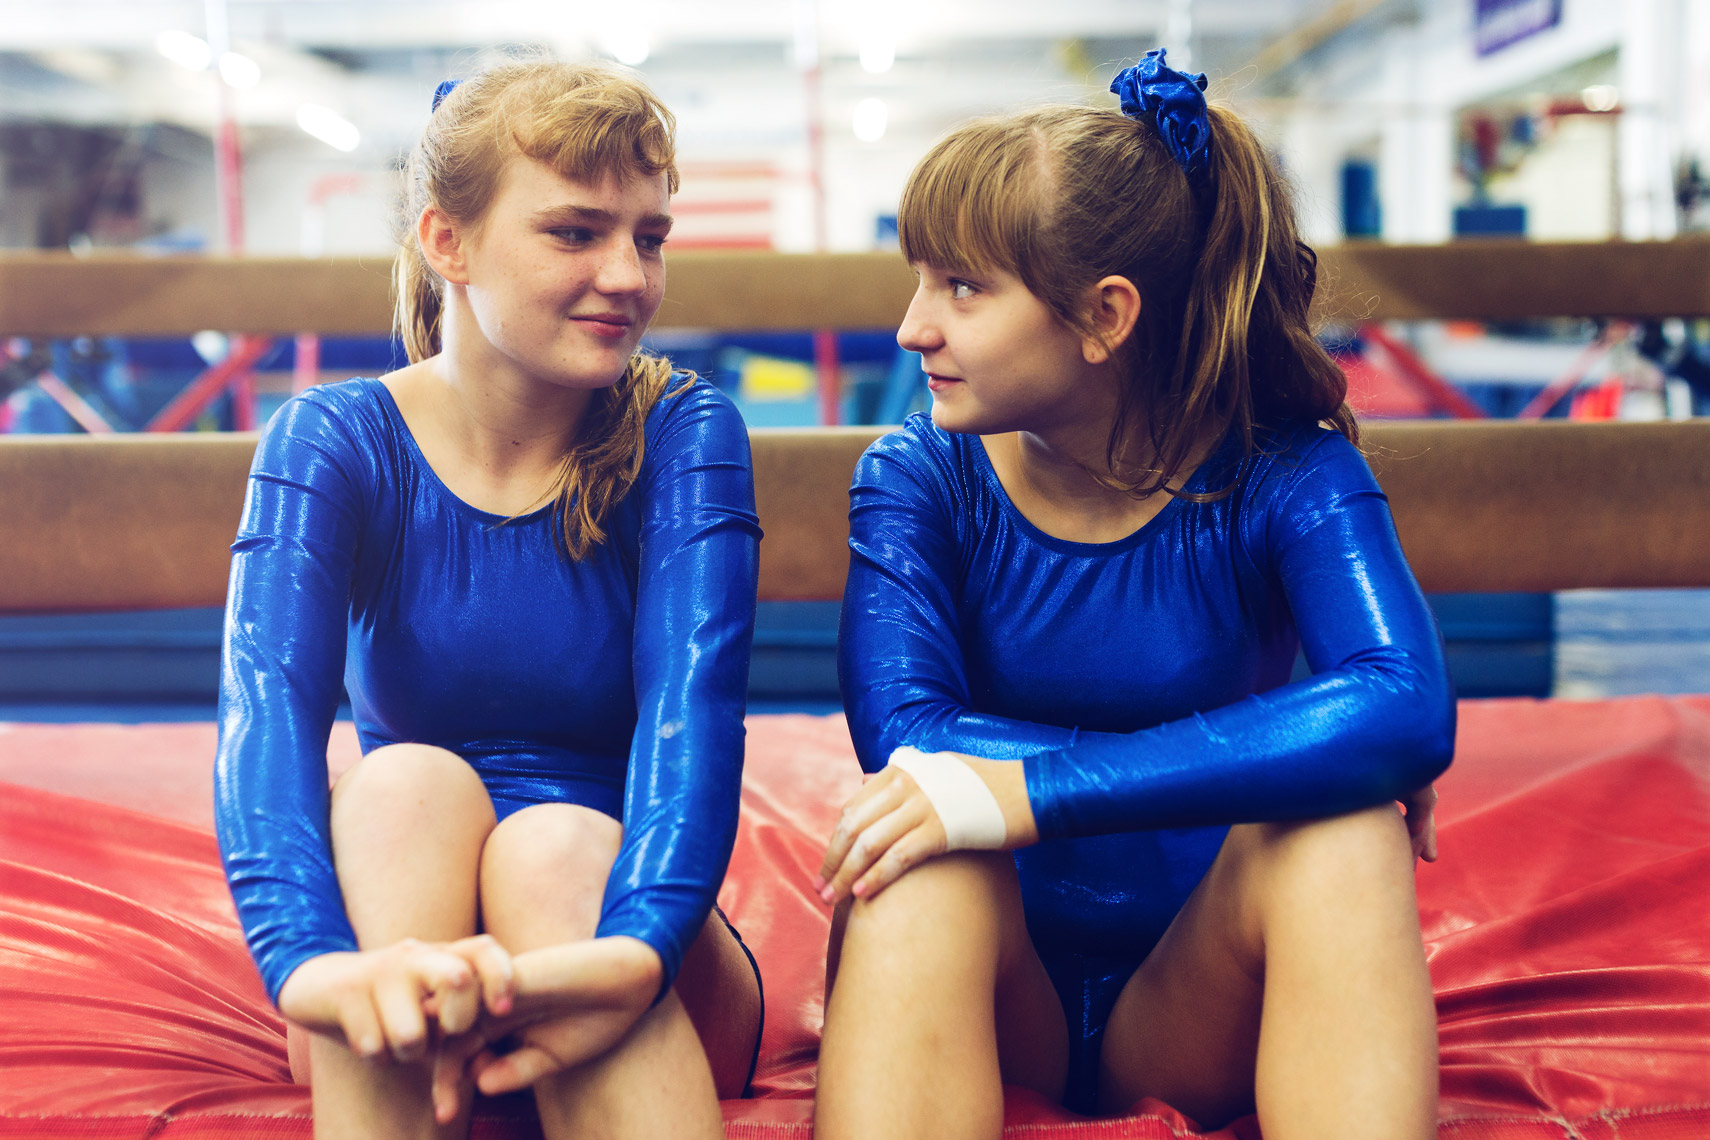 special olympics gymnast sisters sitting on red mat, washington dc commercial photography